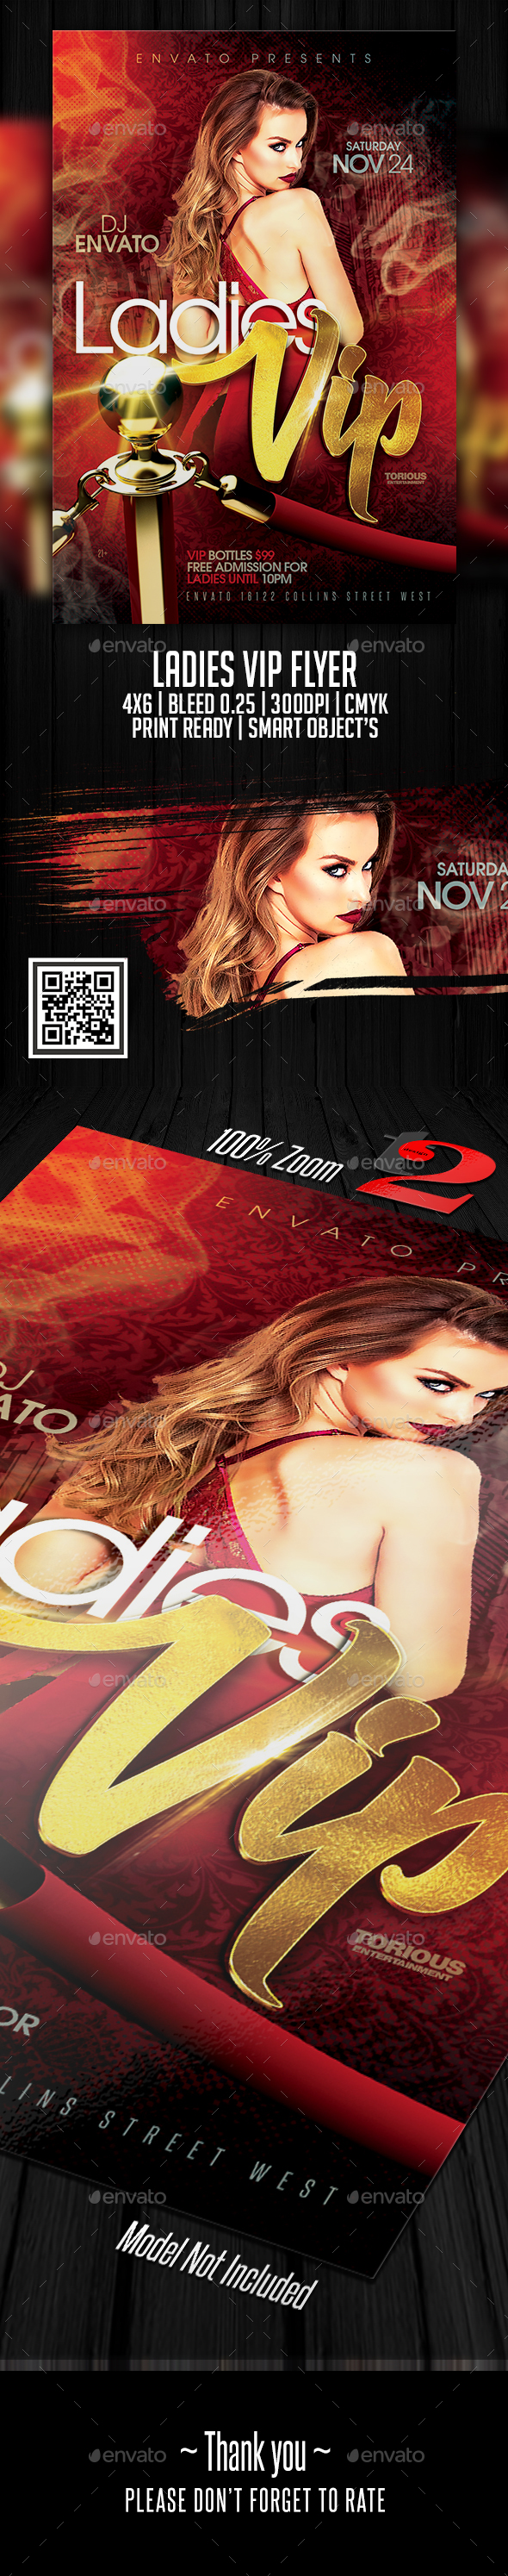 Ladies Vip Flyer Template - Clubs & Parties Events